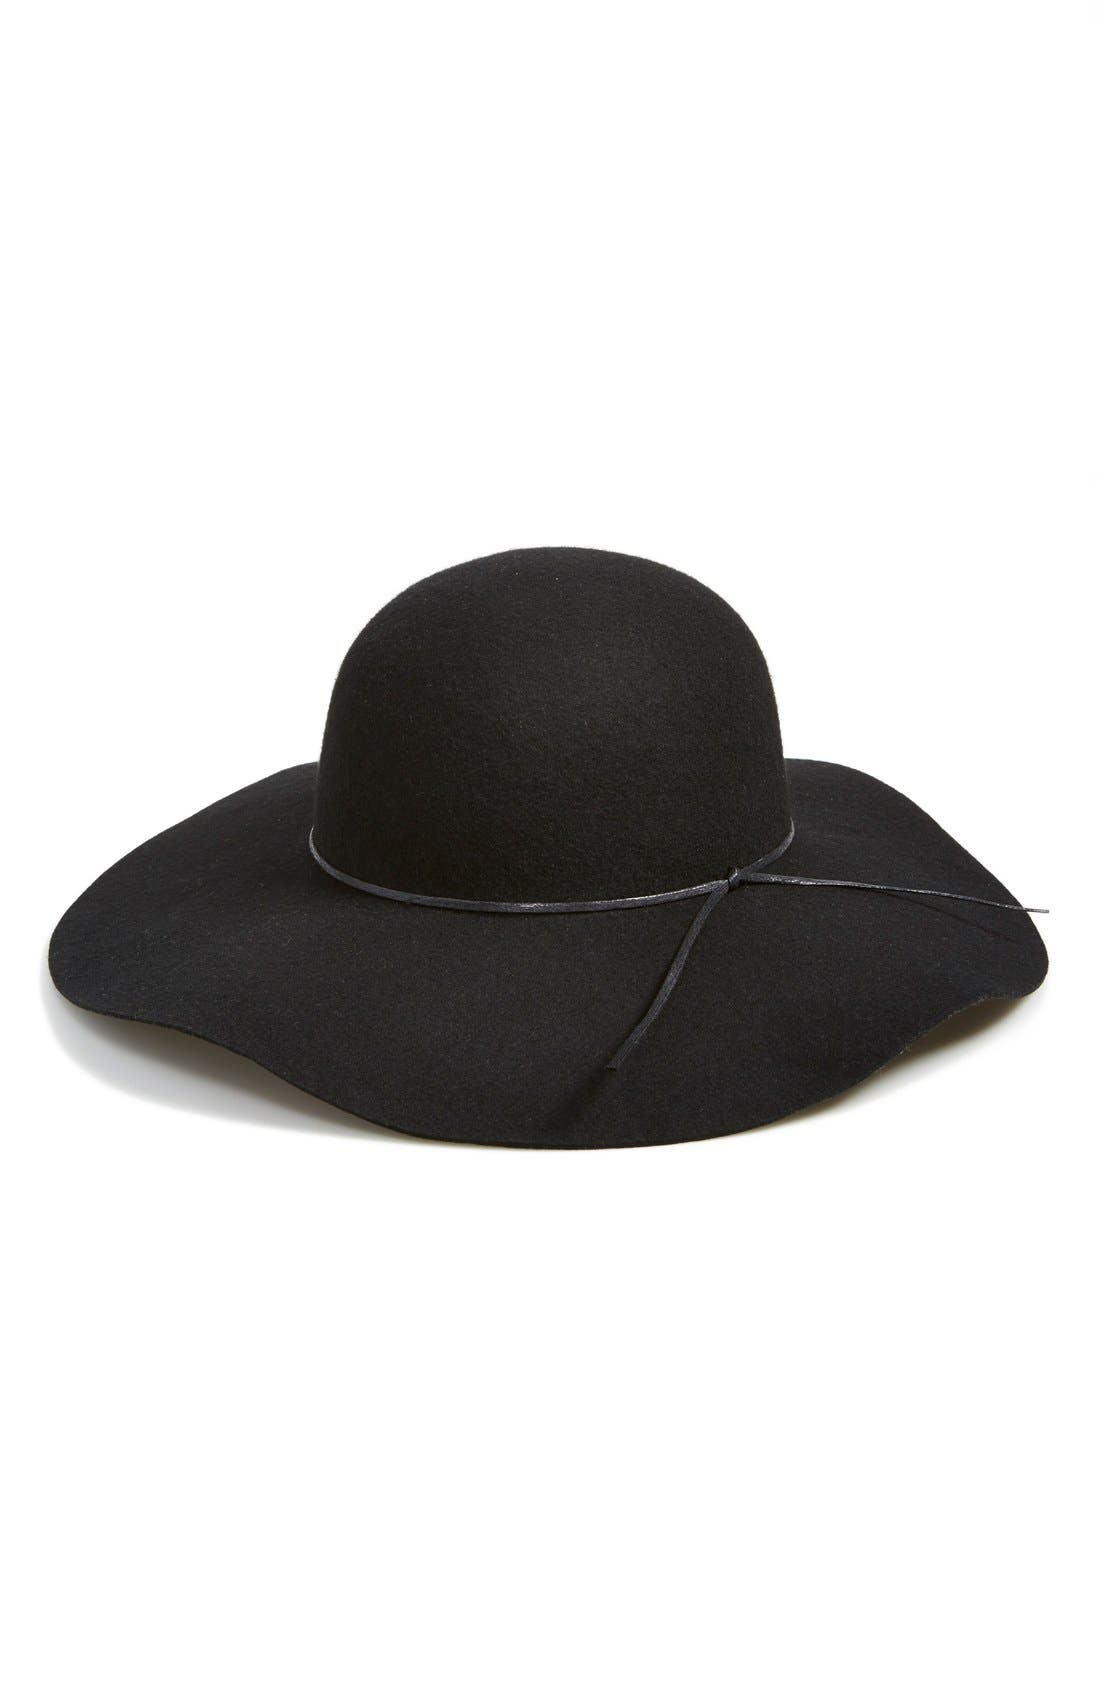 Rope Trim Floppy Felt Hat,                             Alternate thumbnail 3, color,                             001